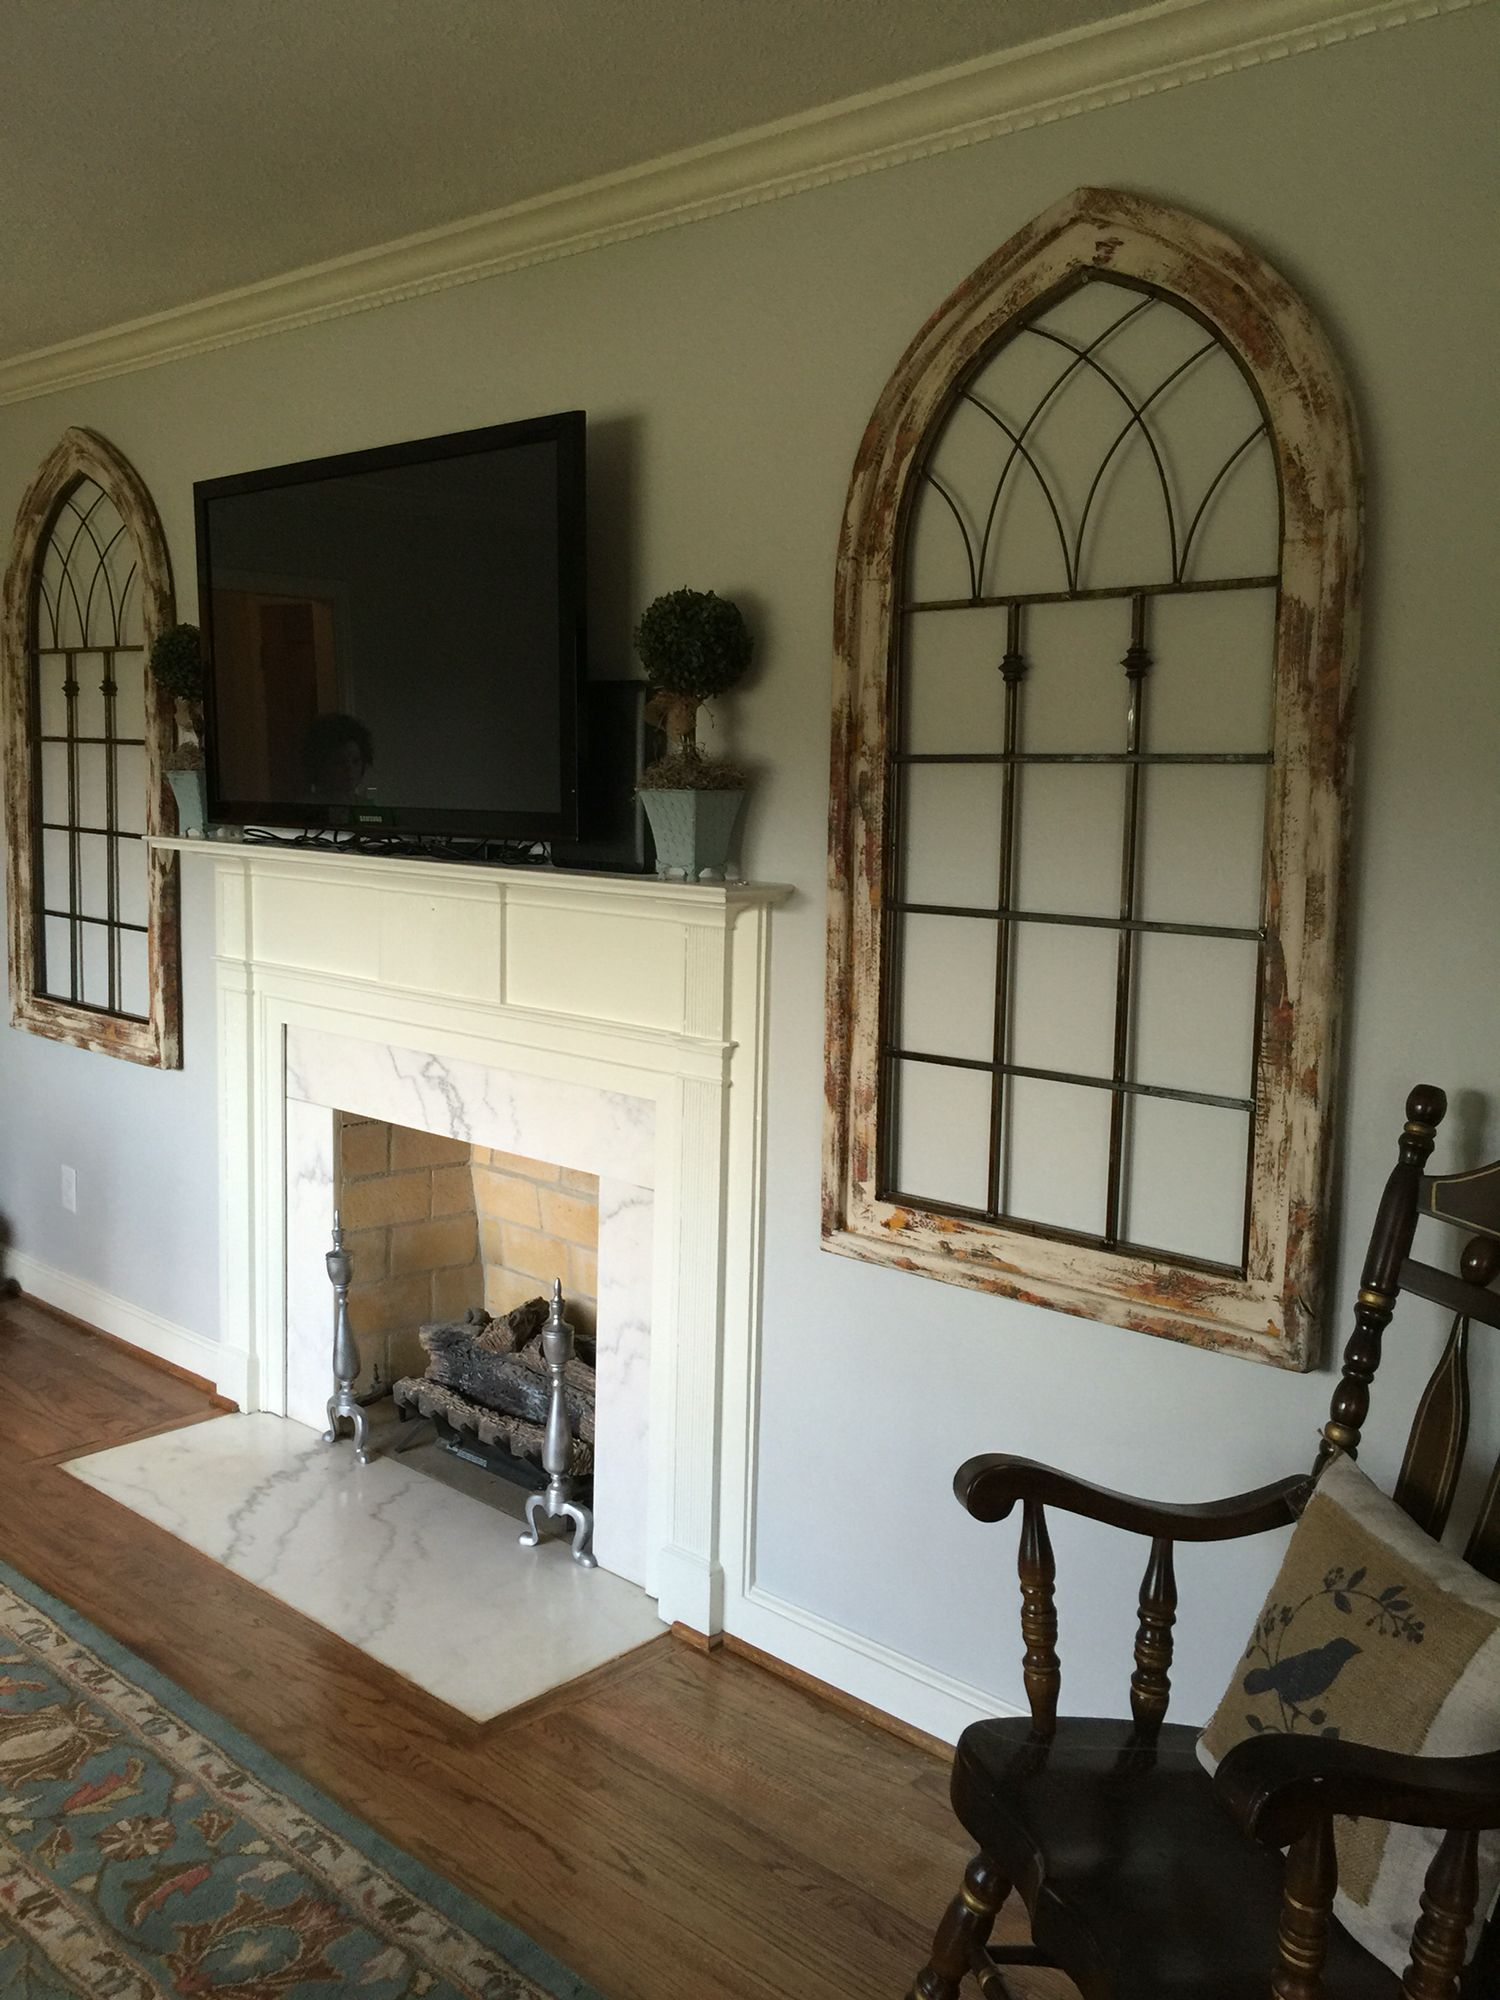 Business Design A House And Window: Living Room. We Added These Large Cathedral Windows To Either Side Of The Fireplace